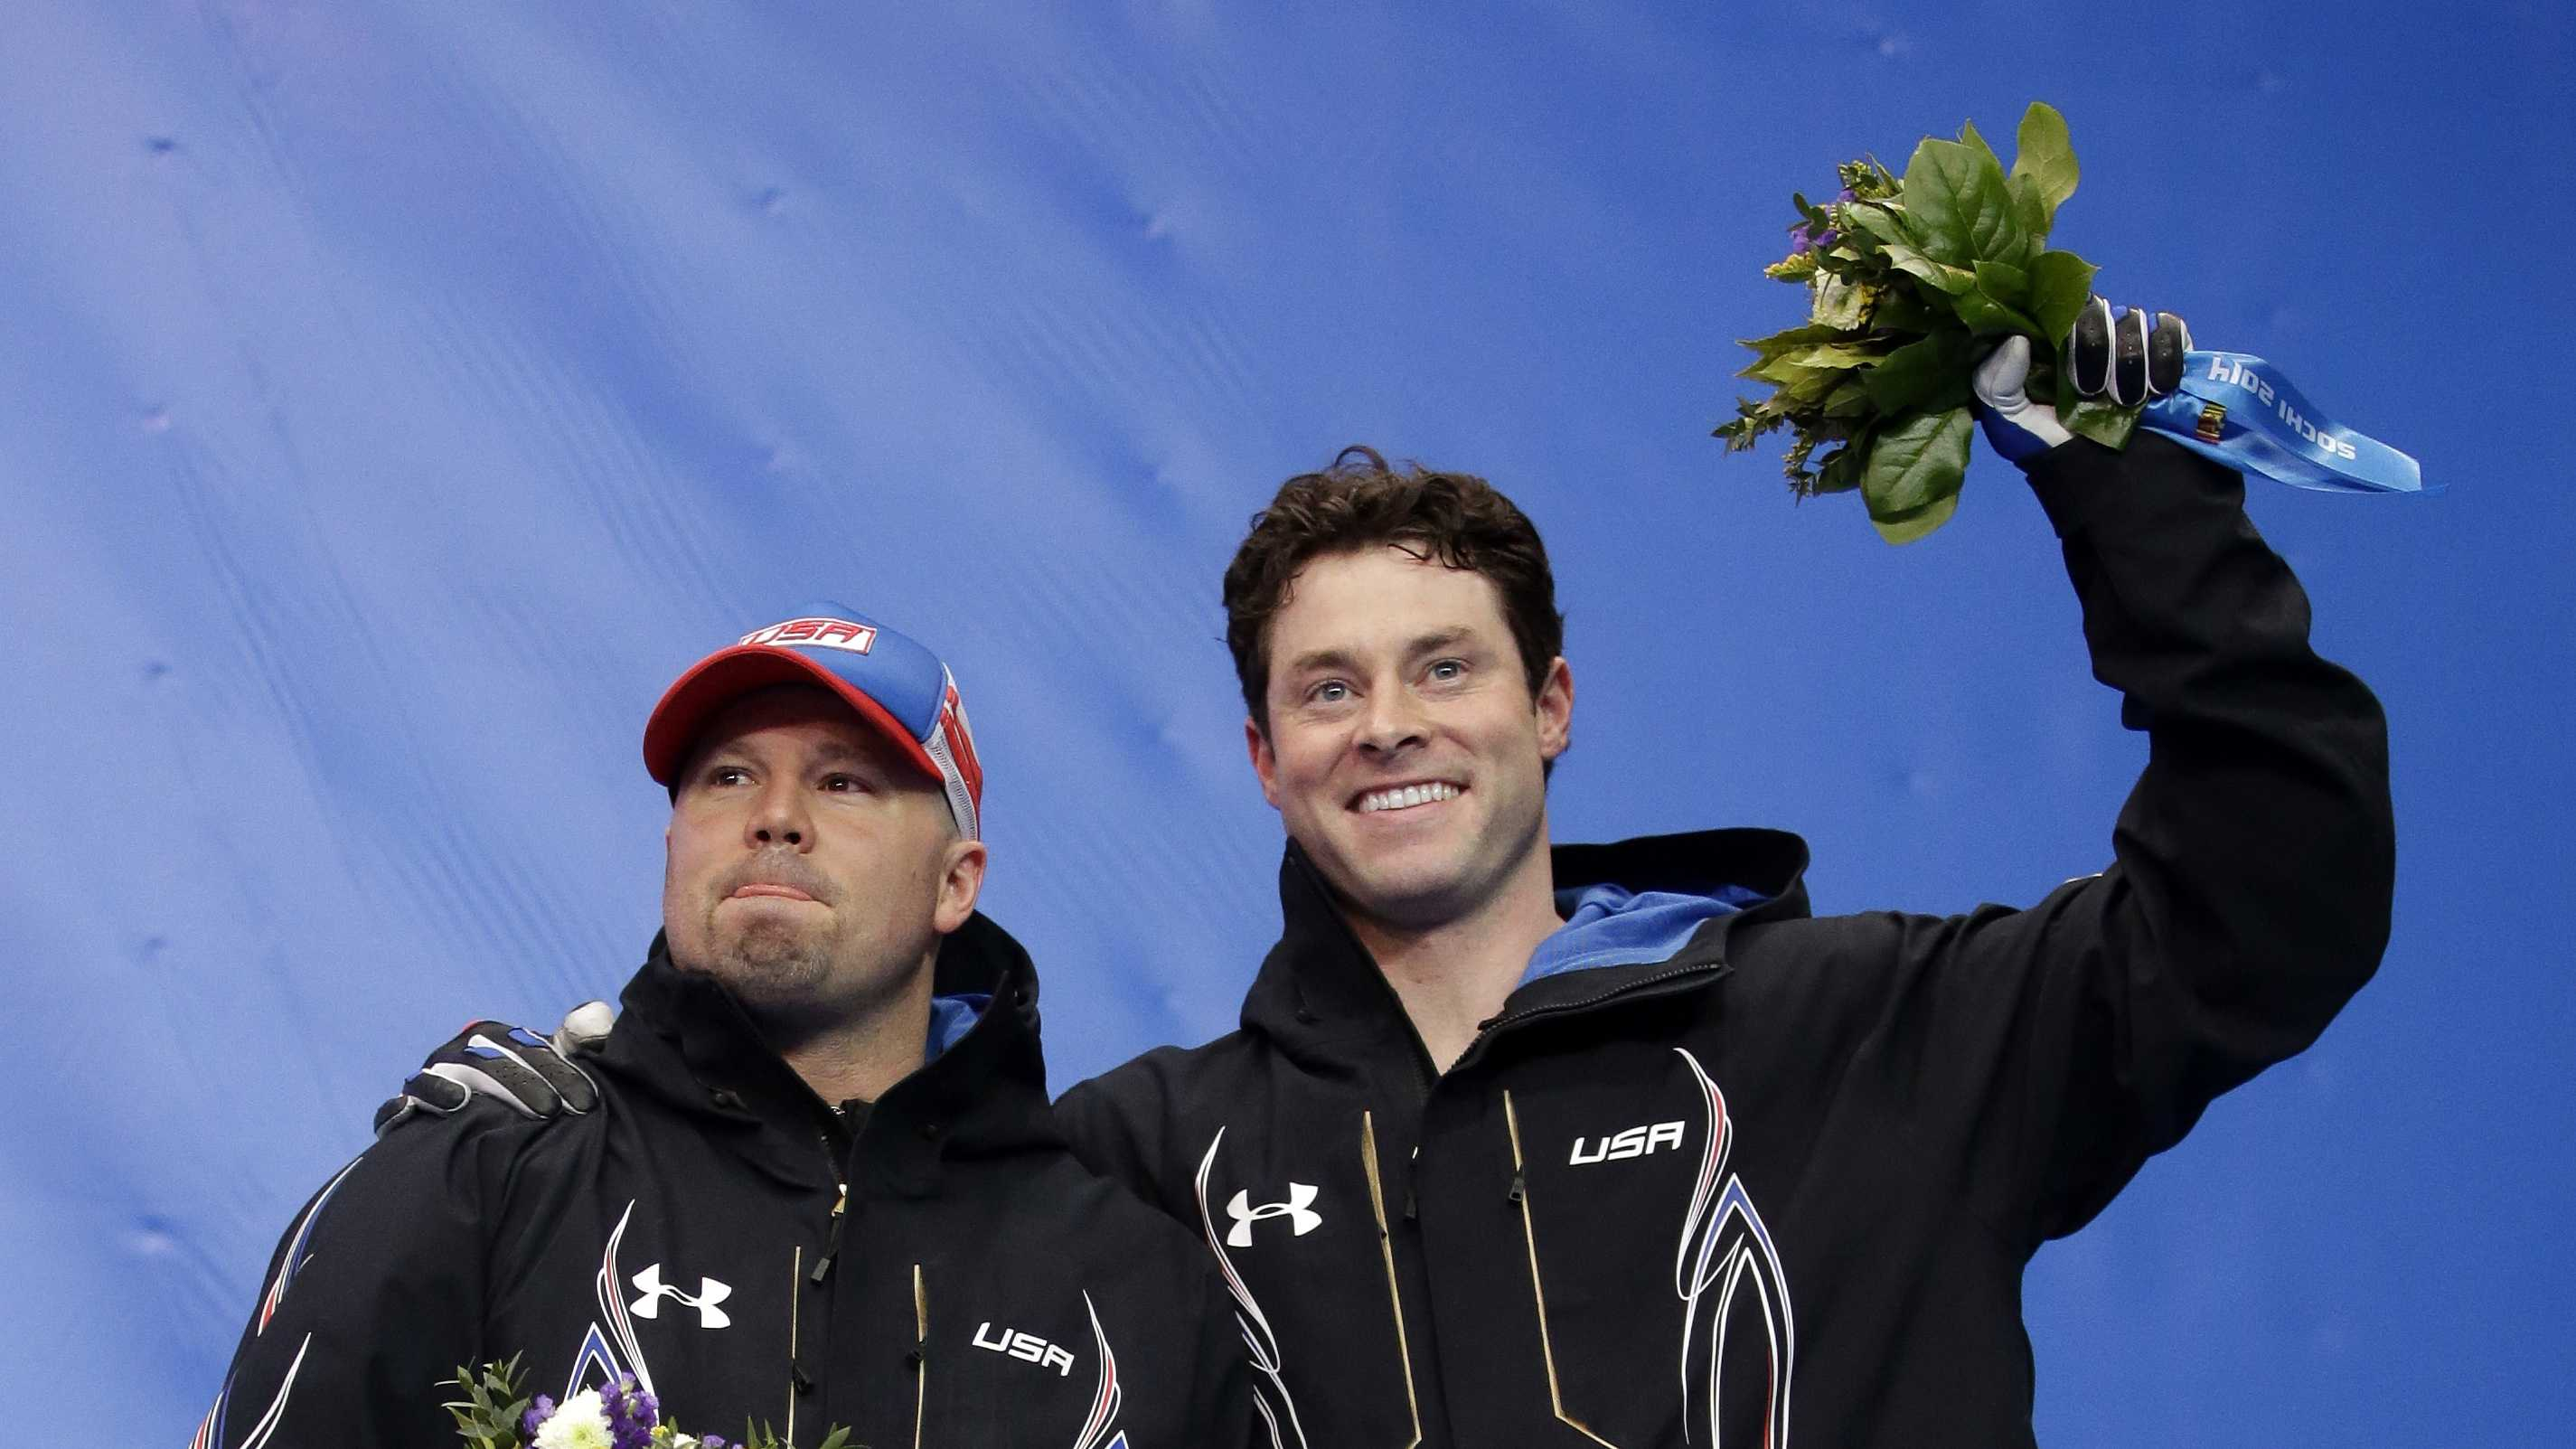 The team from the United States USA-1, piloted by Steven Holcomb (left) and brakeman Steven Langton, celebrate their bronze medal win after the men's two-man bobsled competition at the 2014 Winter Olympics, Monday, Feb. 17, 2014, in Krasnaya Polyana, Russia.